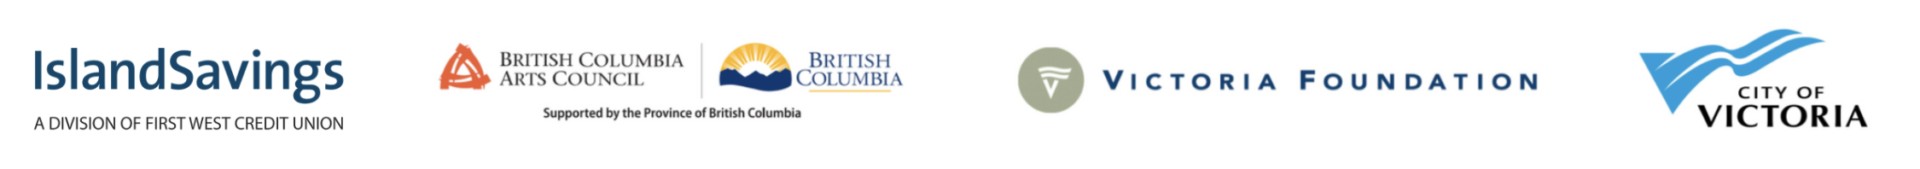 The logos of BC Arts Council, Victoria Foundation, and City of Victoria